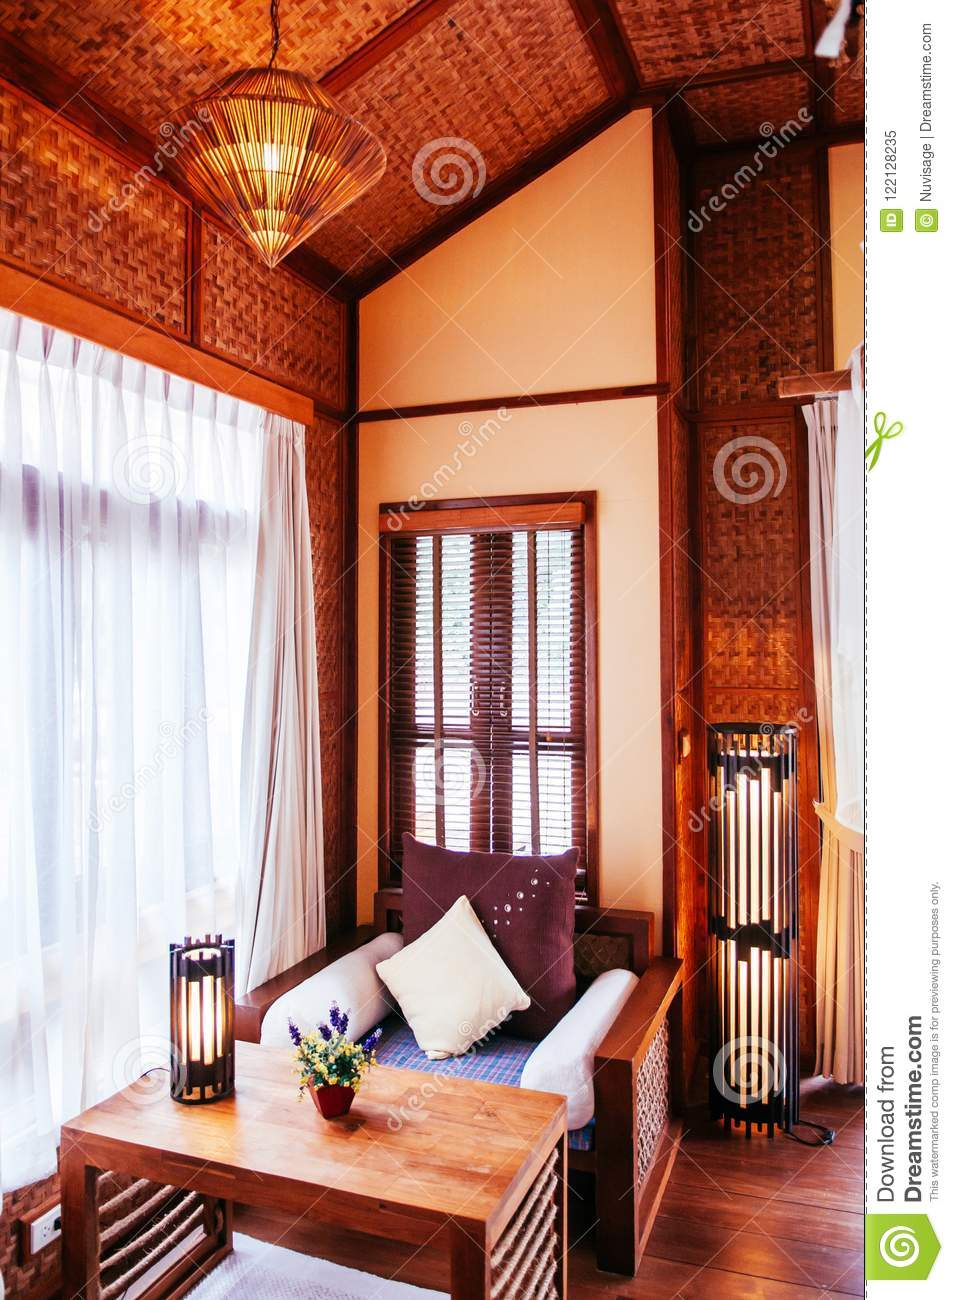 Awe Inspiring Asian Living Room Interior With Wooden Couch And Table Onthecornerstone Fun Painted Chair Ideas Images Onthecornerstoneorg